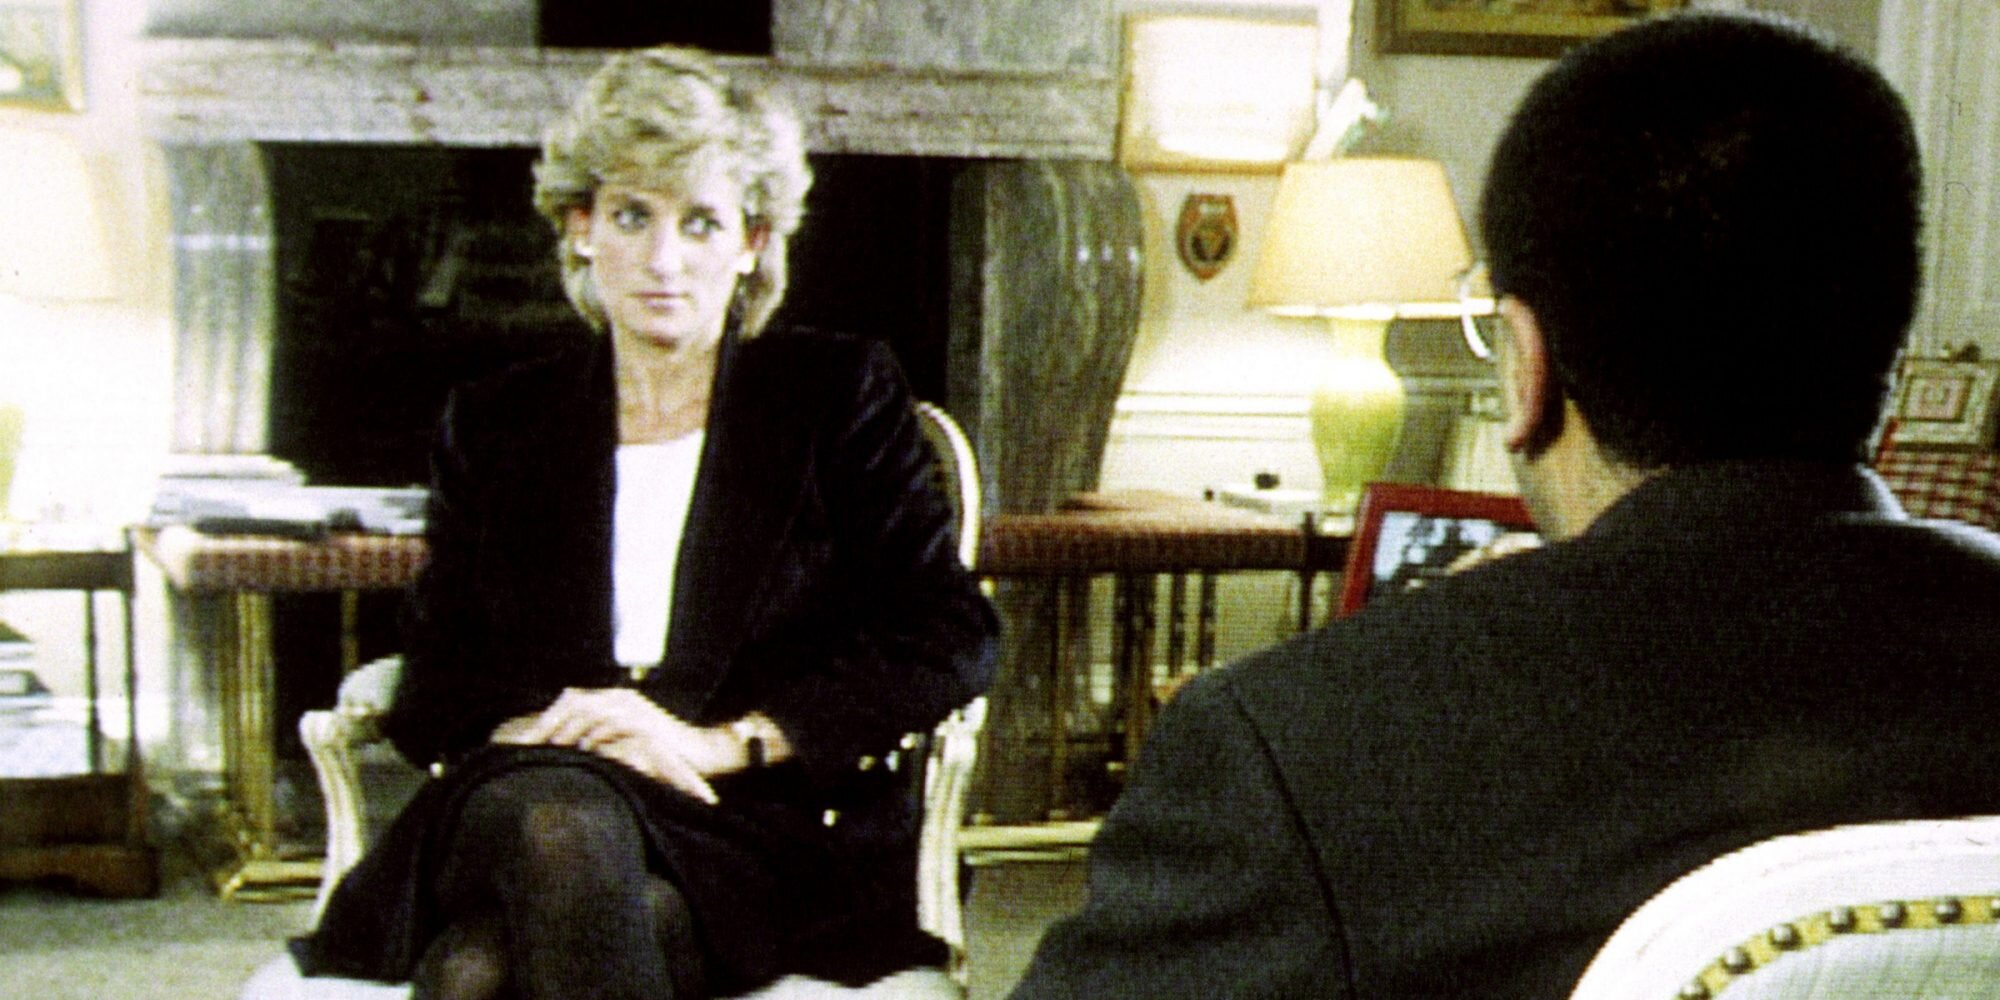 Princess Diana Interviewer Martin Bashir Will Not Face Criminal Charges Over 1995 Panorama Interview.jpg